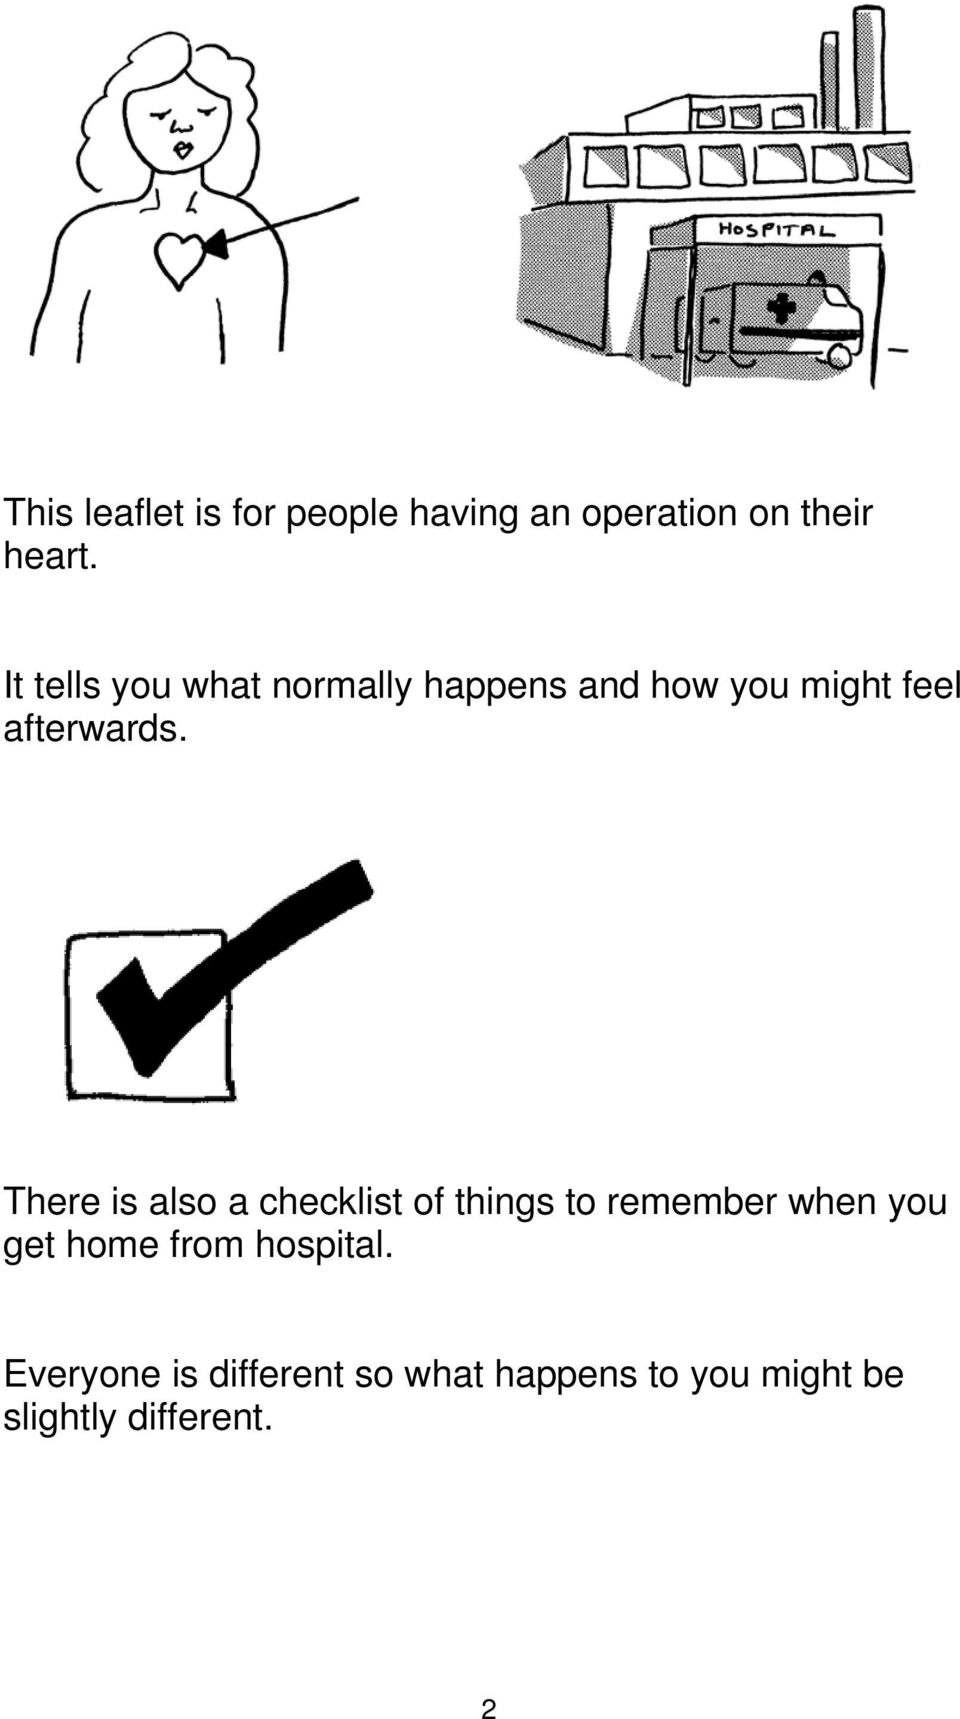 There is also a checklist of things to remember when you get home from